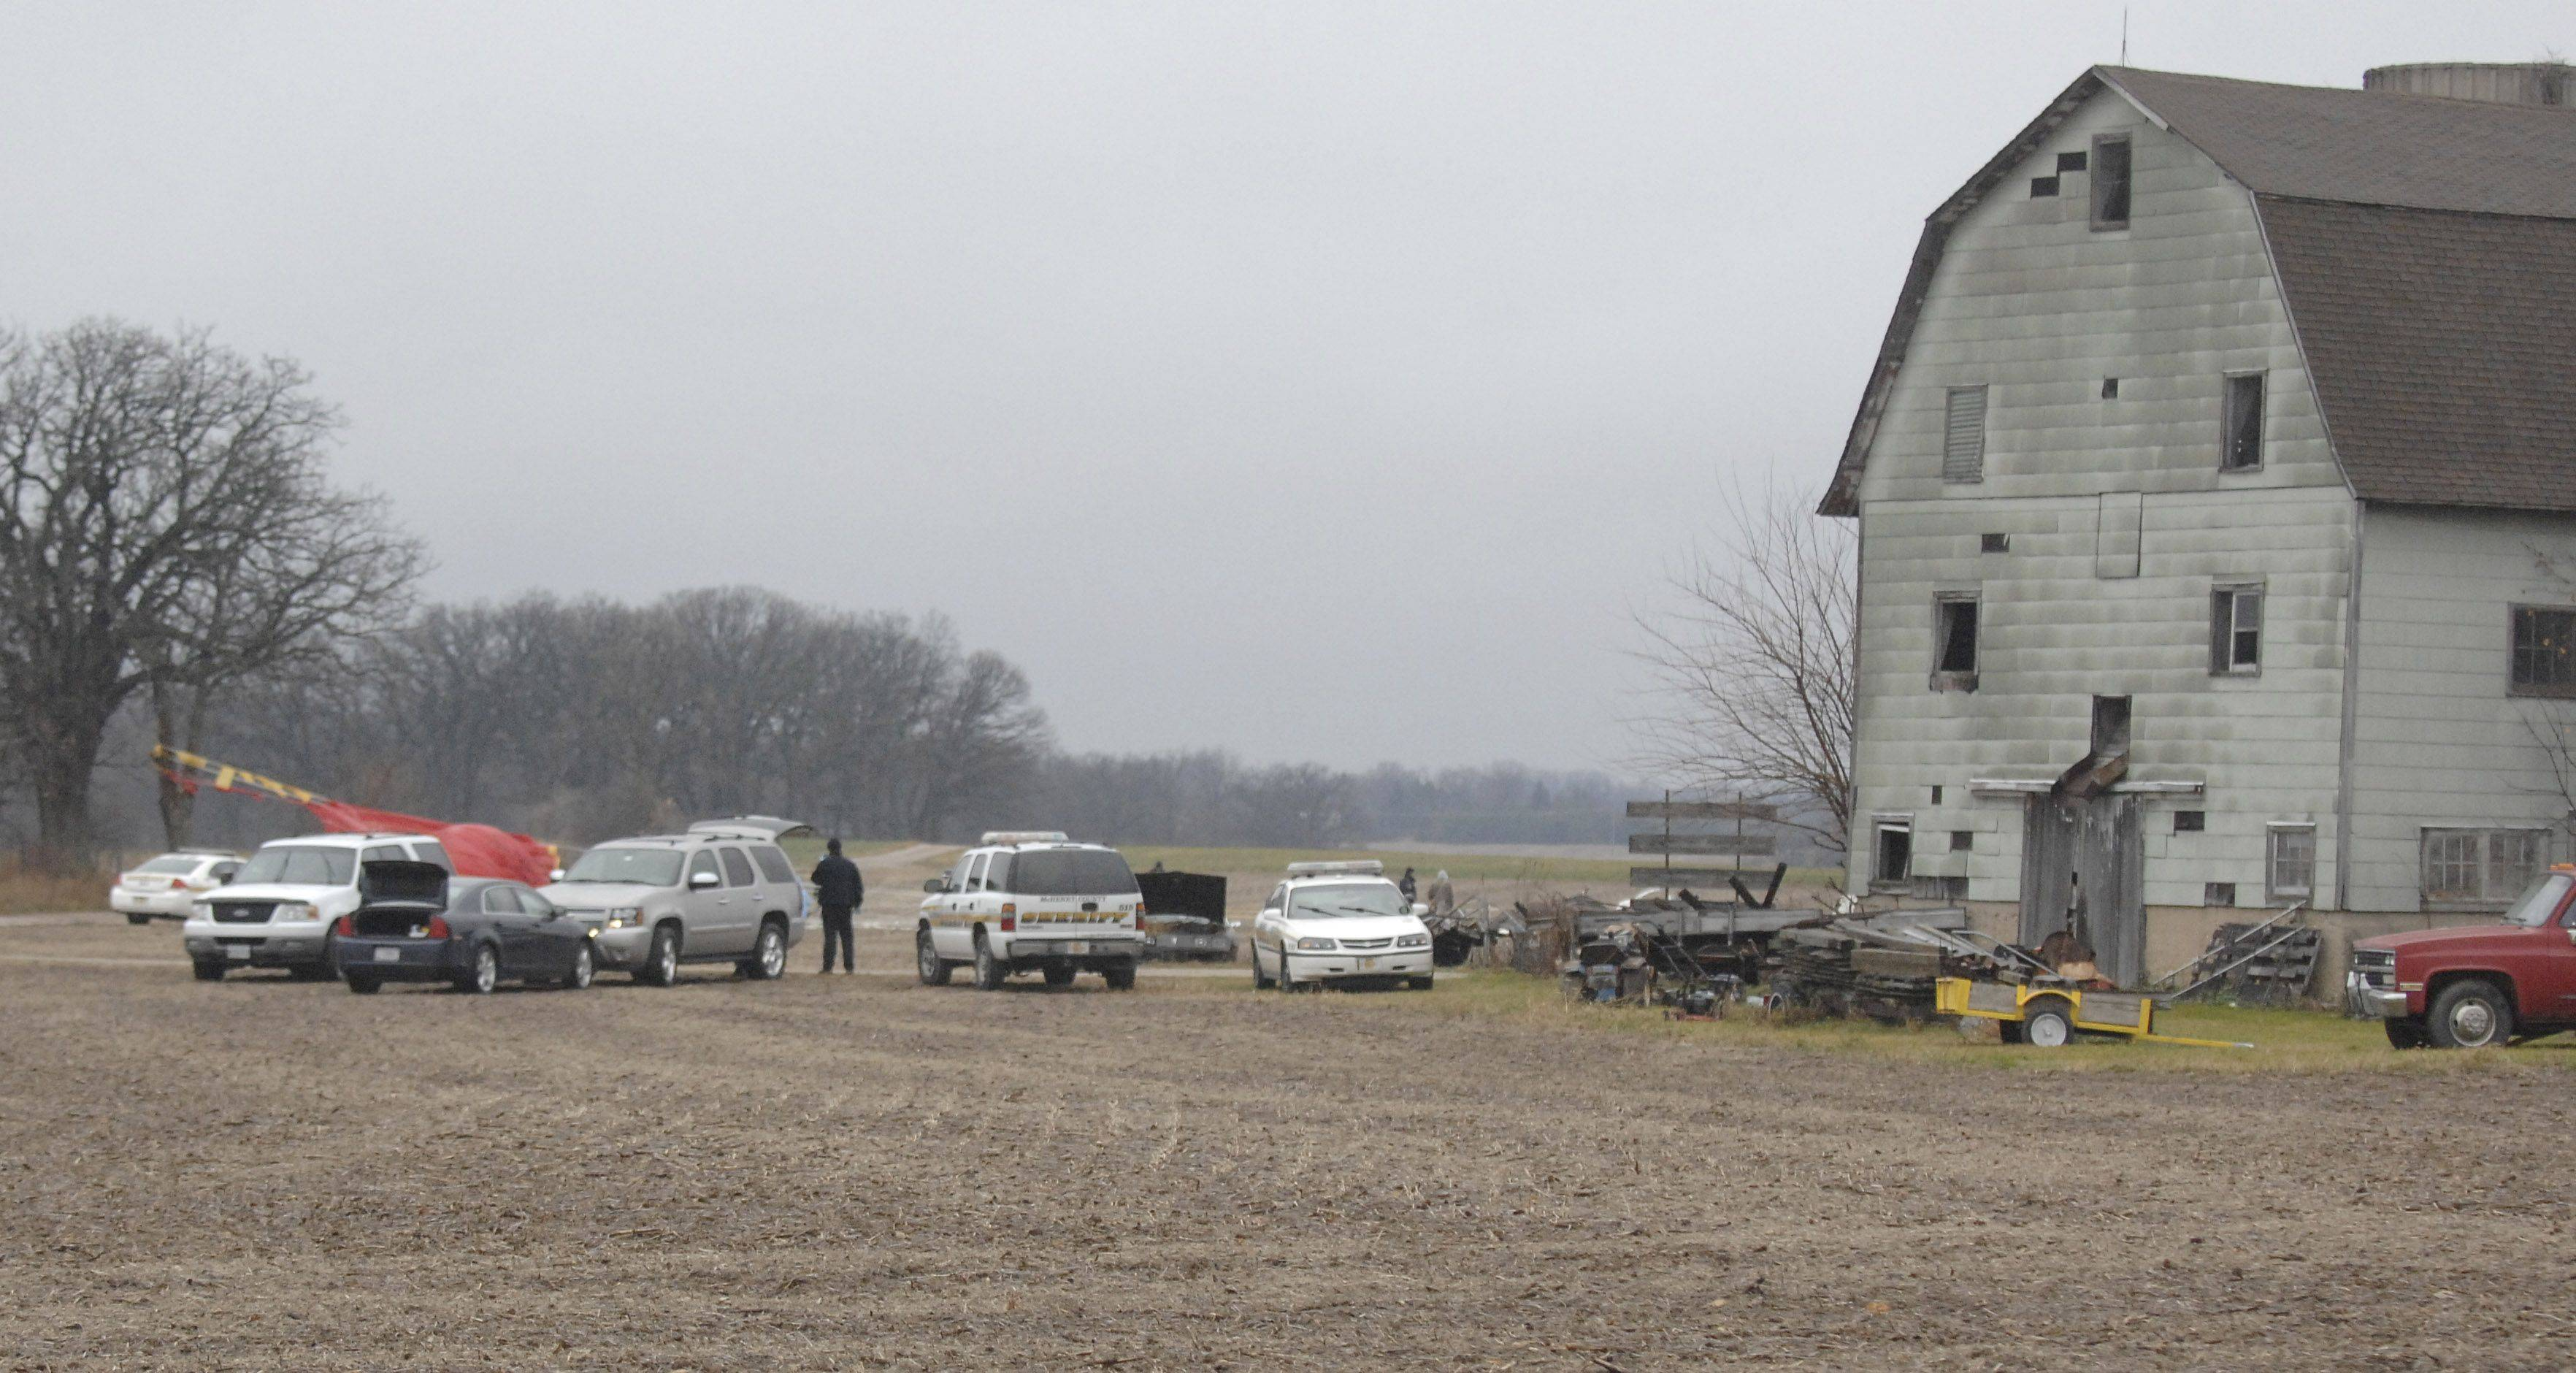 McHenry County Sheriff Deputy Aimee Knop talks to media across the street from the scene of the fatal plane crash Saturday near Crystal Lake.